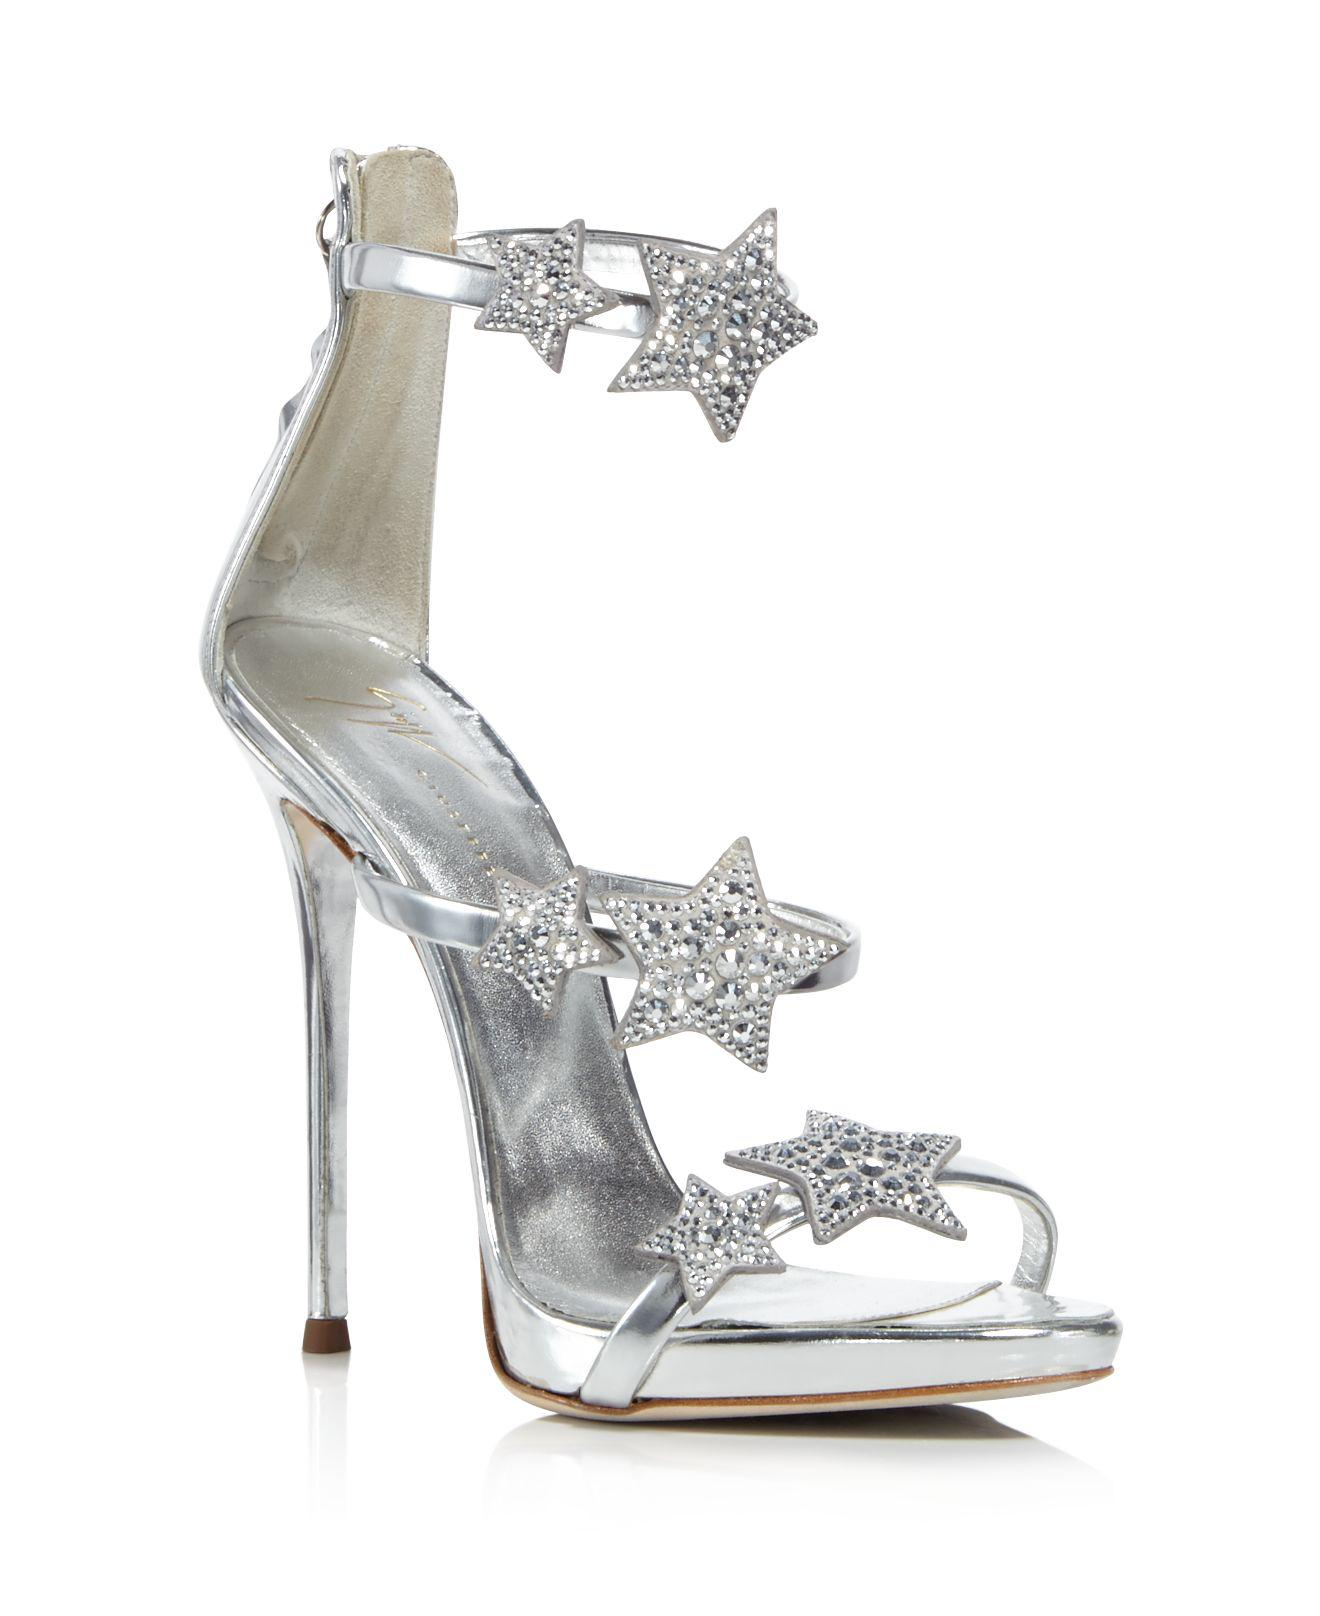 Giuseppe Zanotti Women's Strappy Leather & Crystal Embellished Star High-Heel Sandals jhXgBVbm